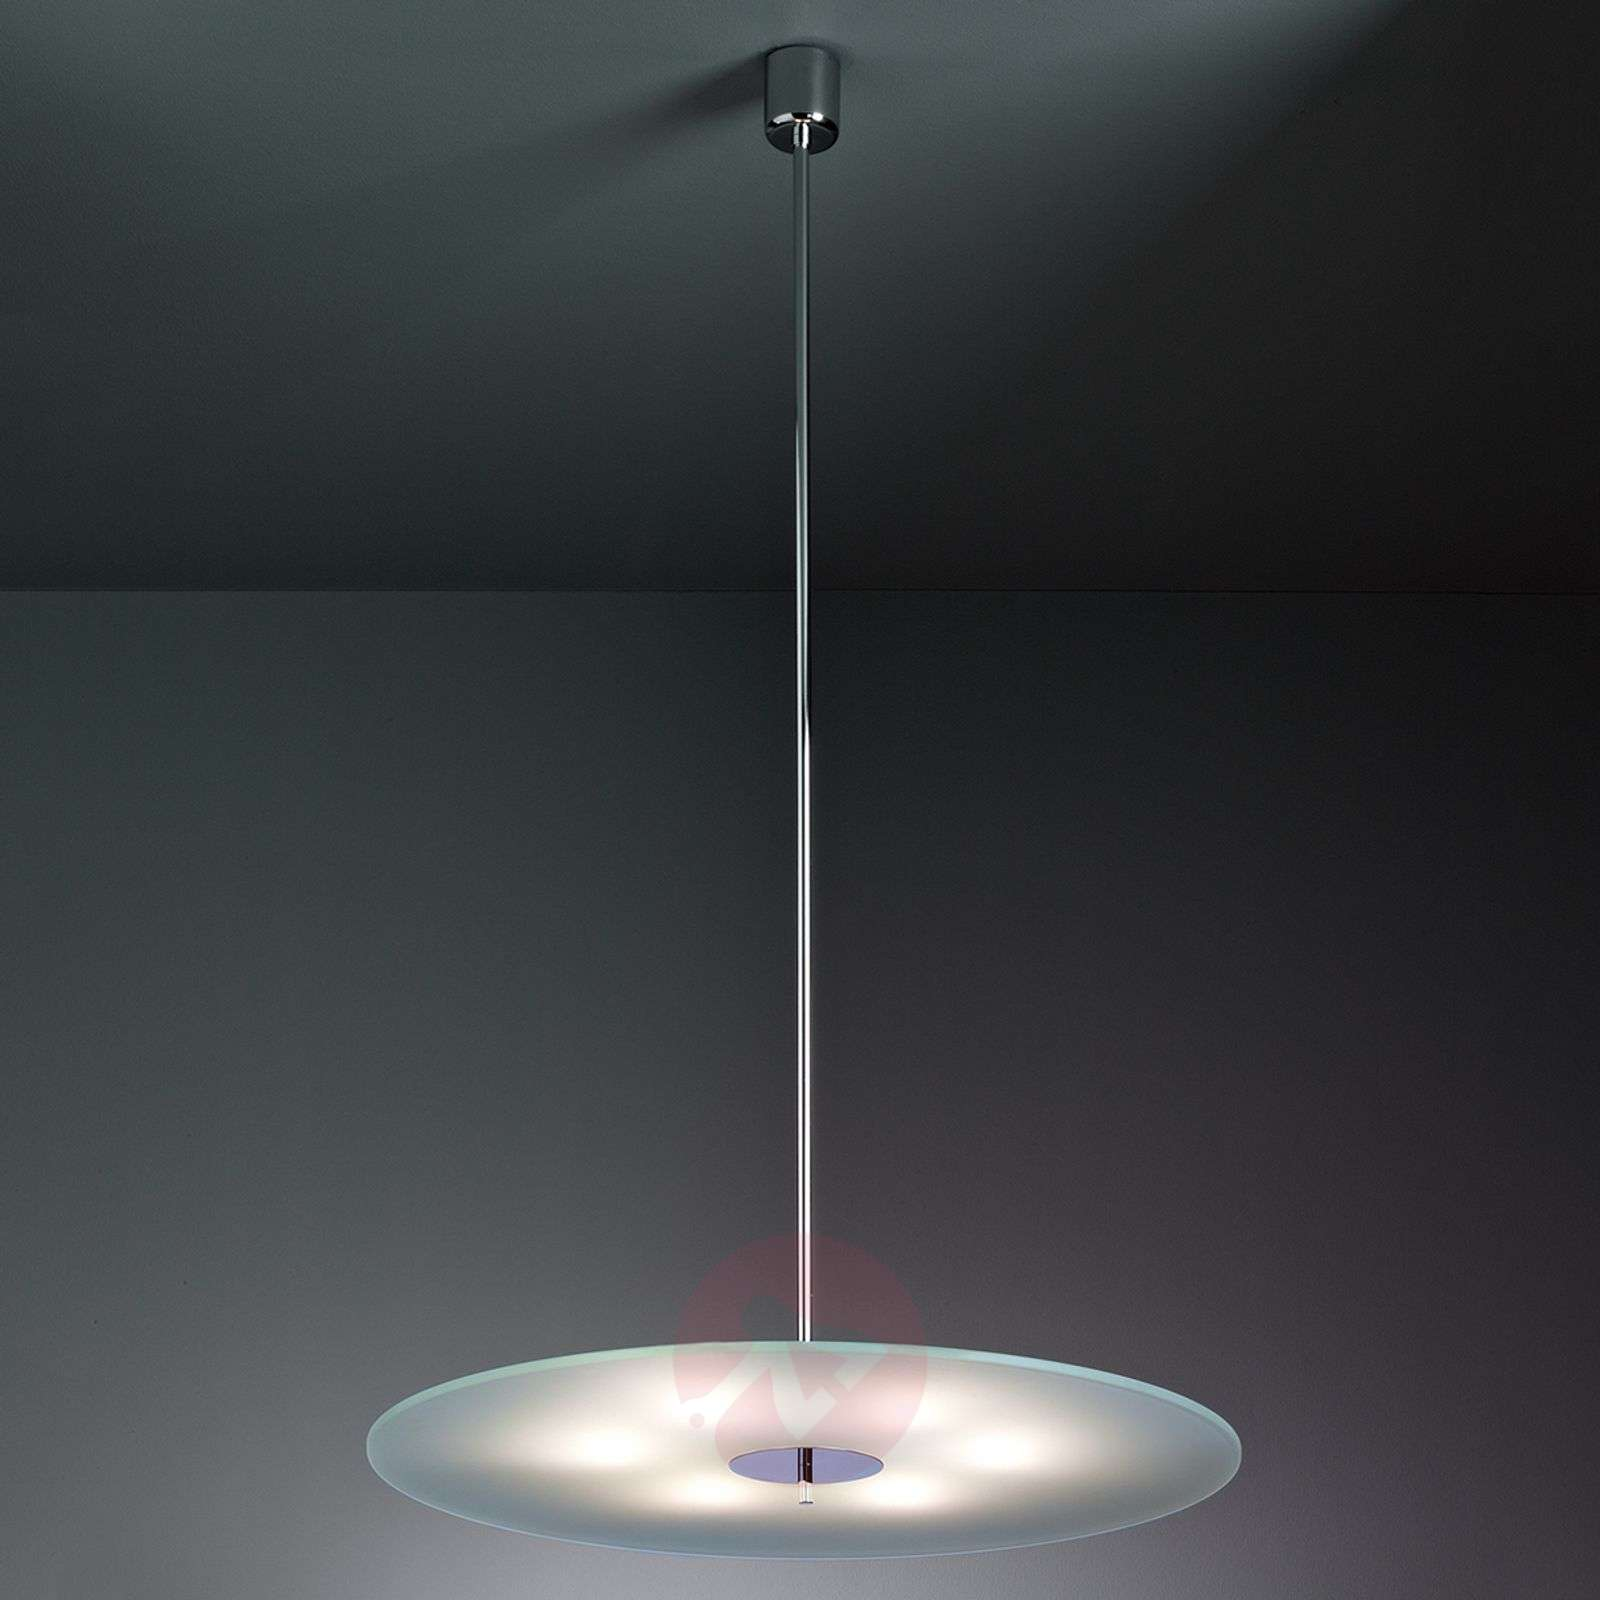 Glass pendant light 70 cm by Hans Przyrembel-9030204-01